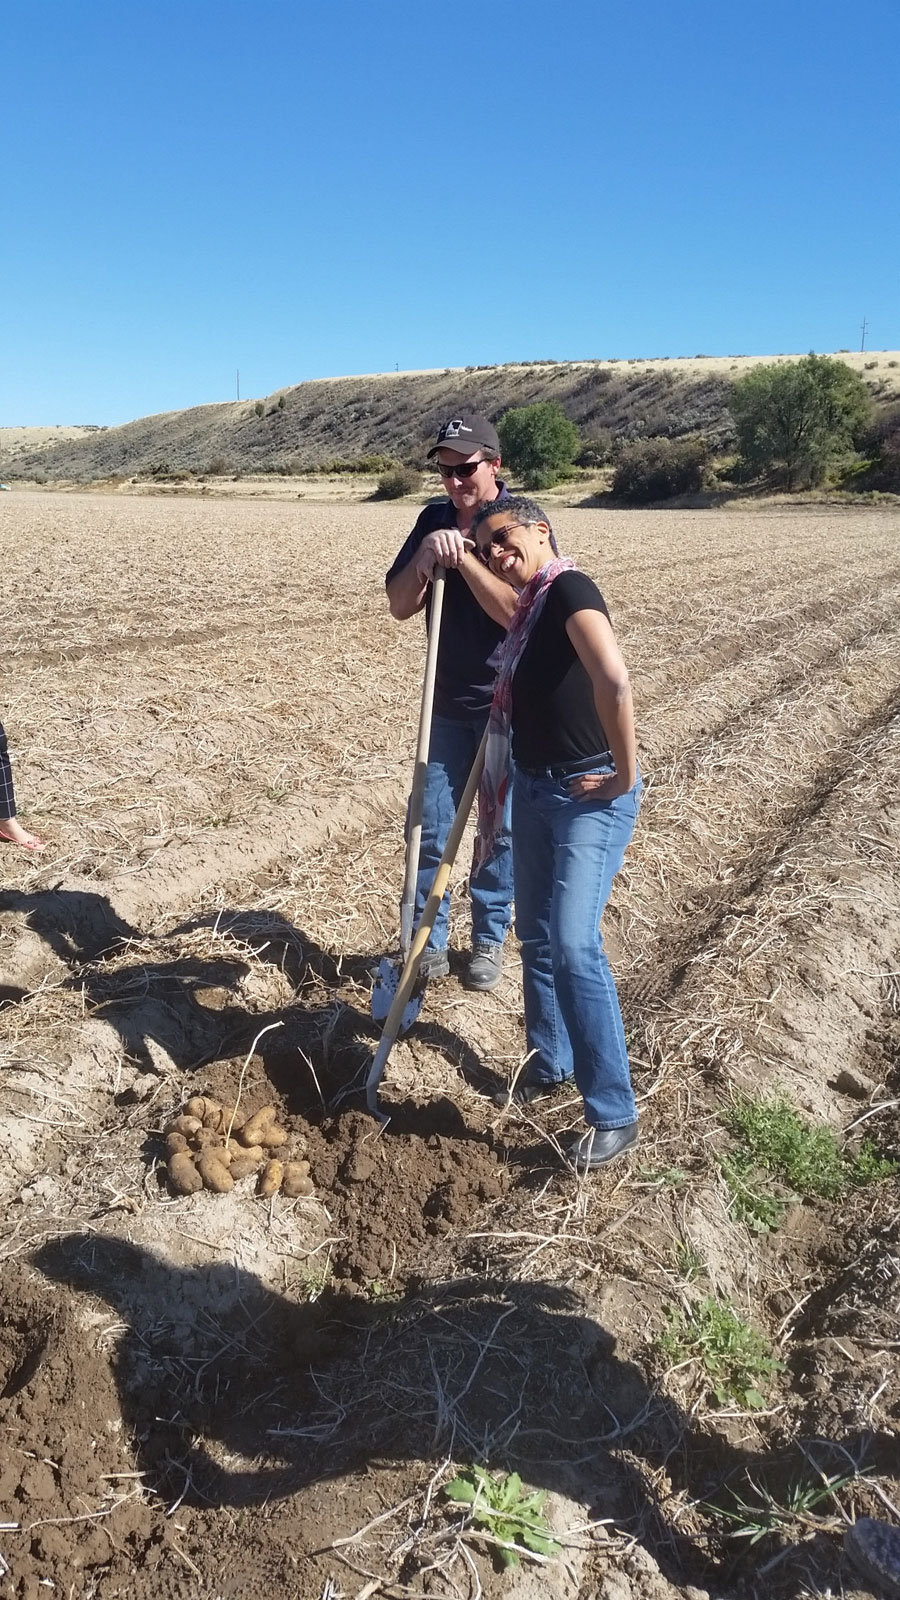 Jackie digging spuds with potato farmer James Hoff, Idaho Falls 2015